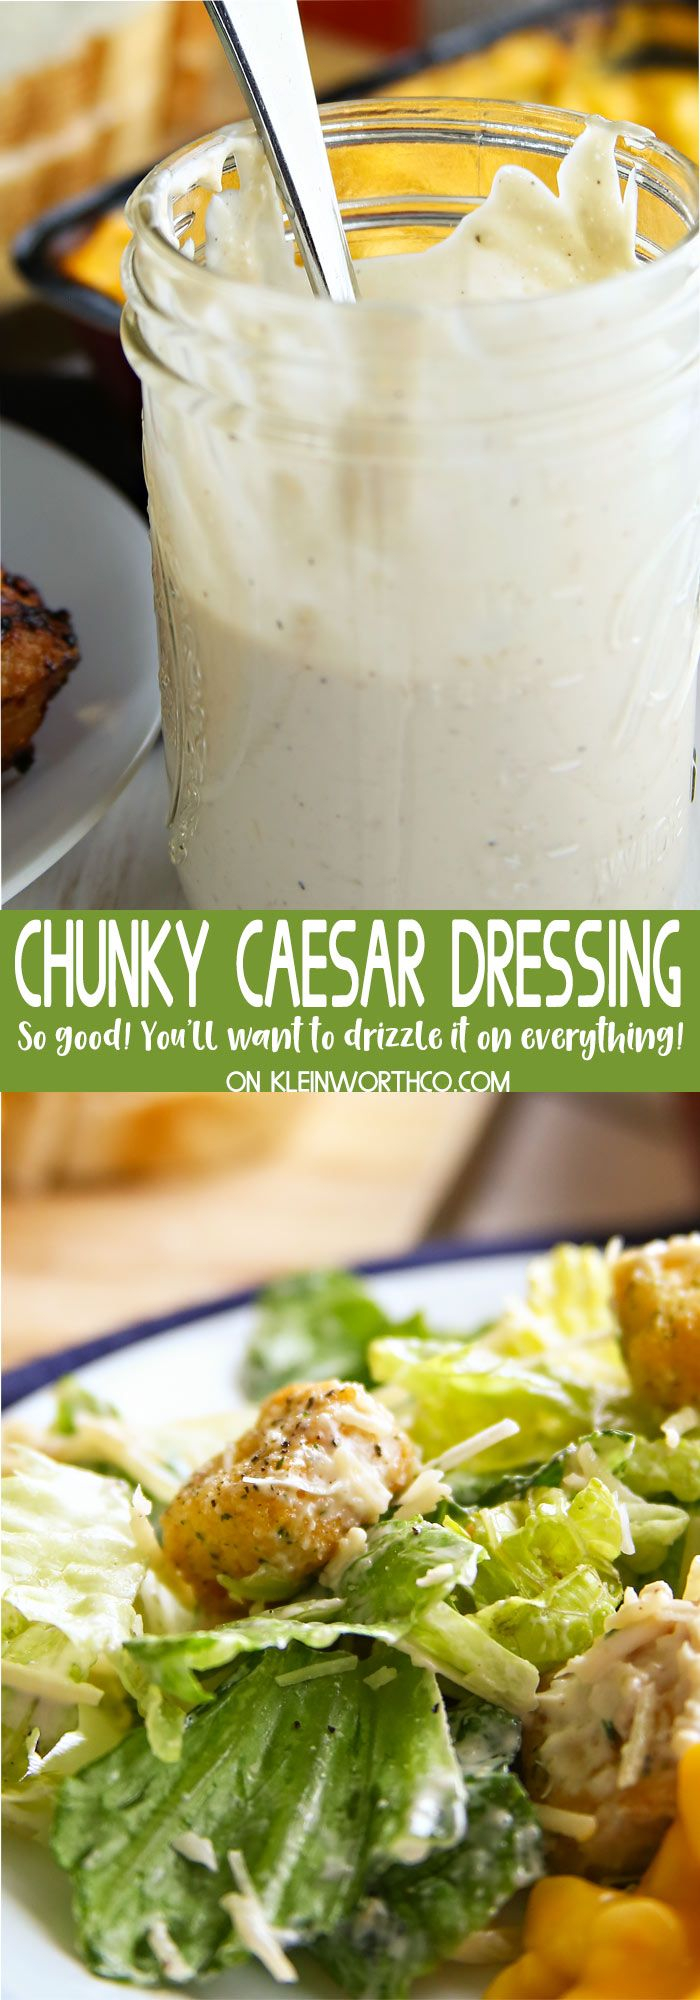 #sponsored Chunky Caesar Dressing Recipe is easy to make so you can always have some on hand. Serve homemade Caesar Salad with grilled chicken & pasta for dinner.  #BalanceYourPlate #CLVR @stouffers/